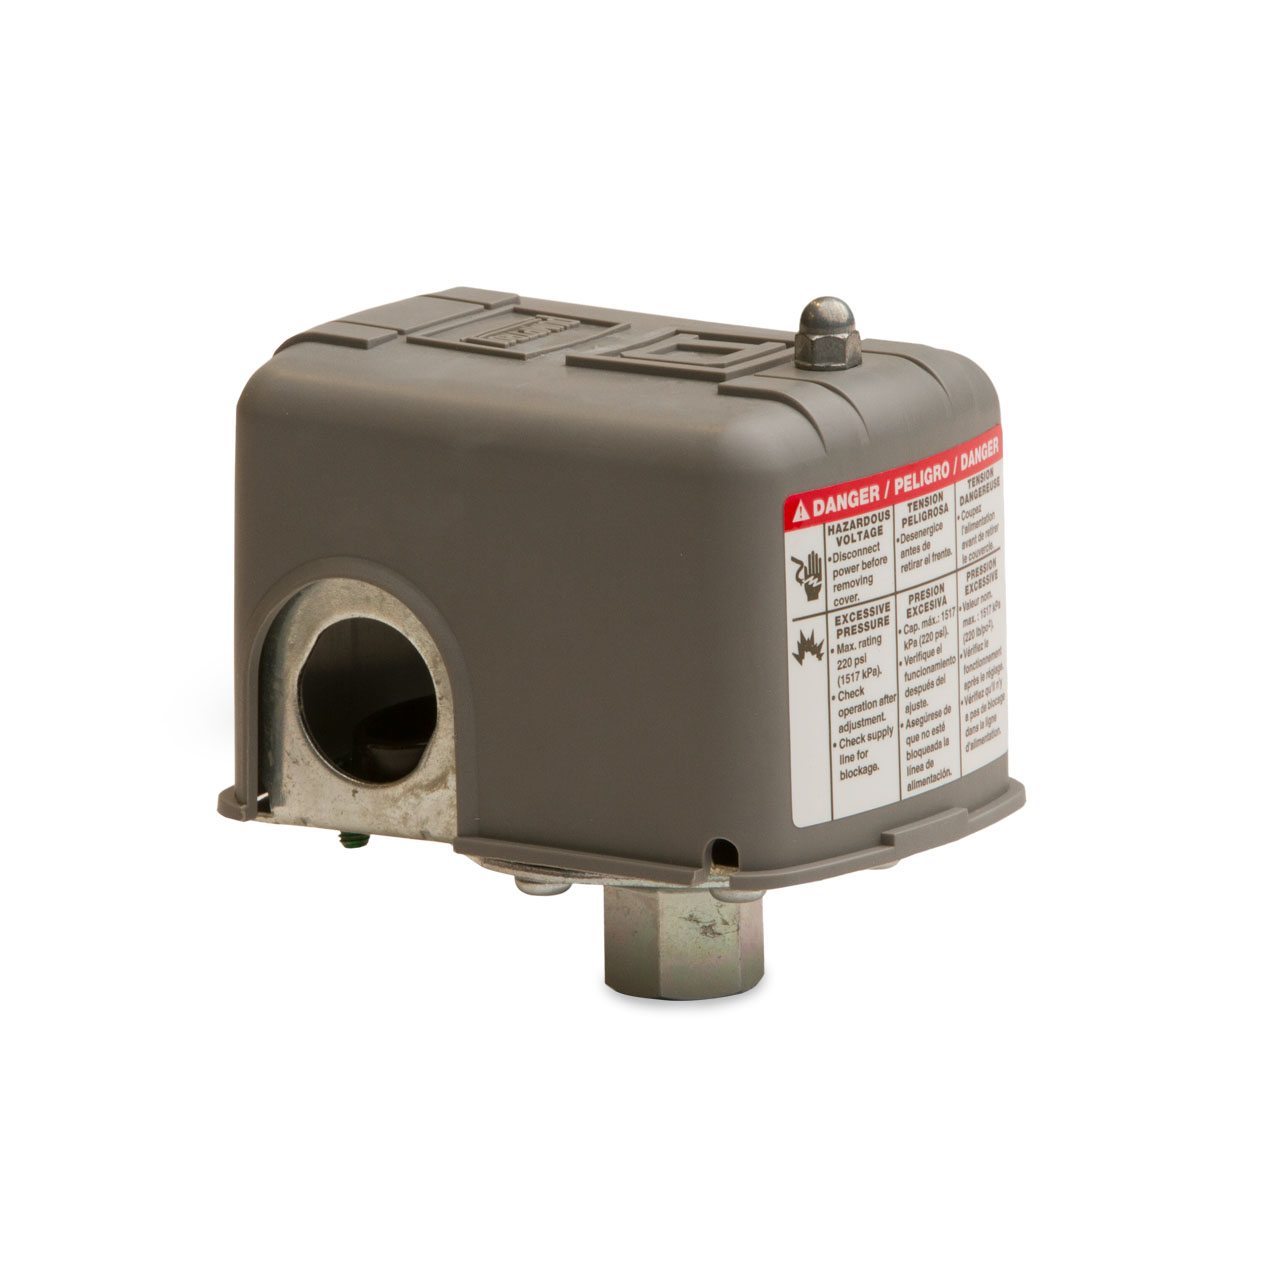 hight resolution of square d square d pressure switch m1 40 60 psi w maintained manual cut out lever 9013fsg2j24m1 sqdfsg2m1